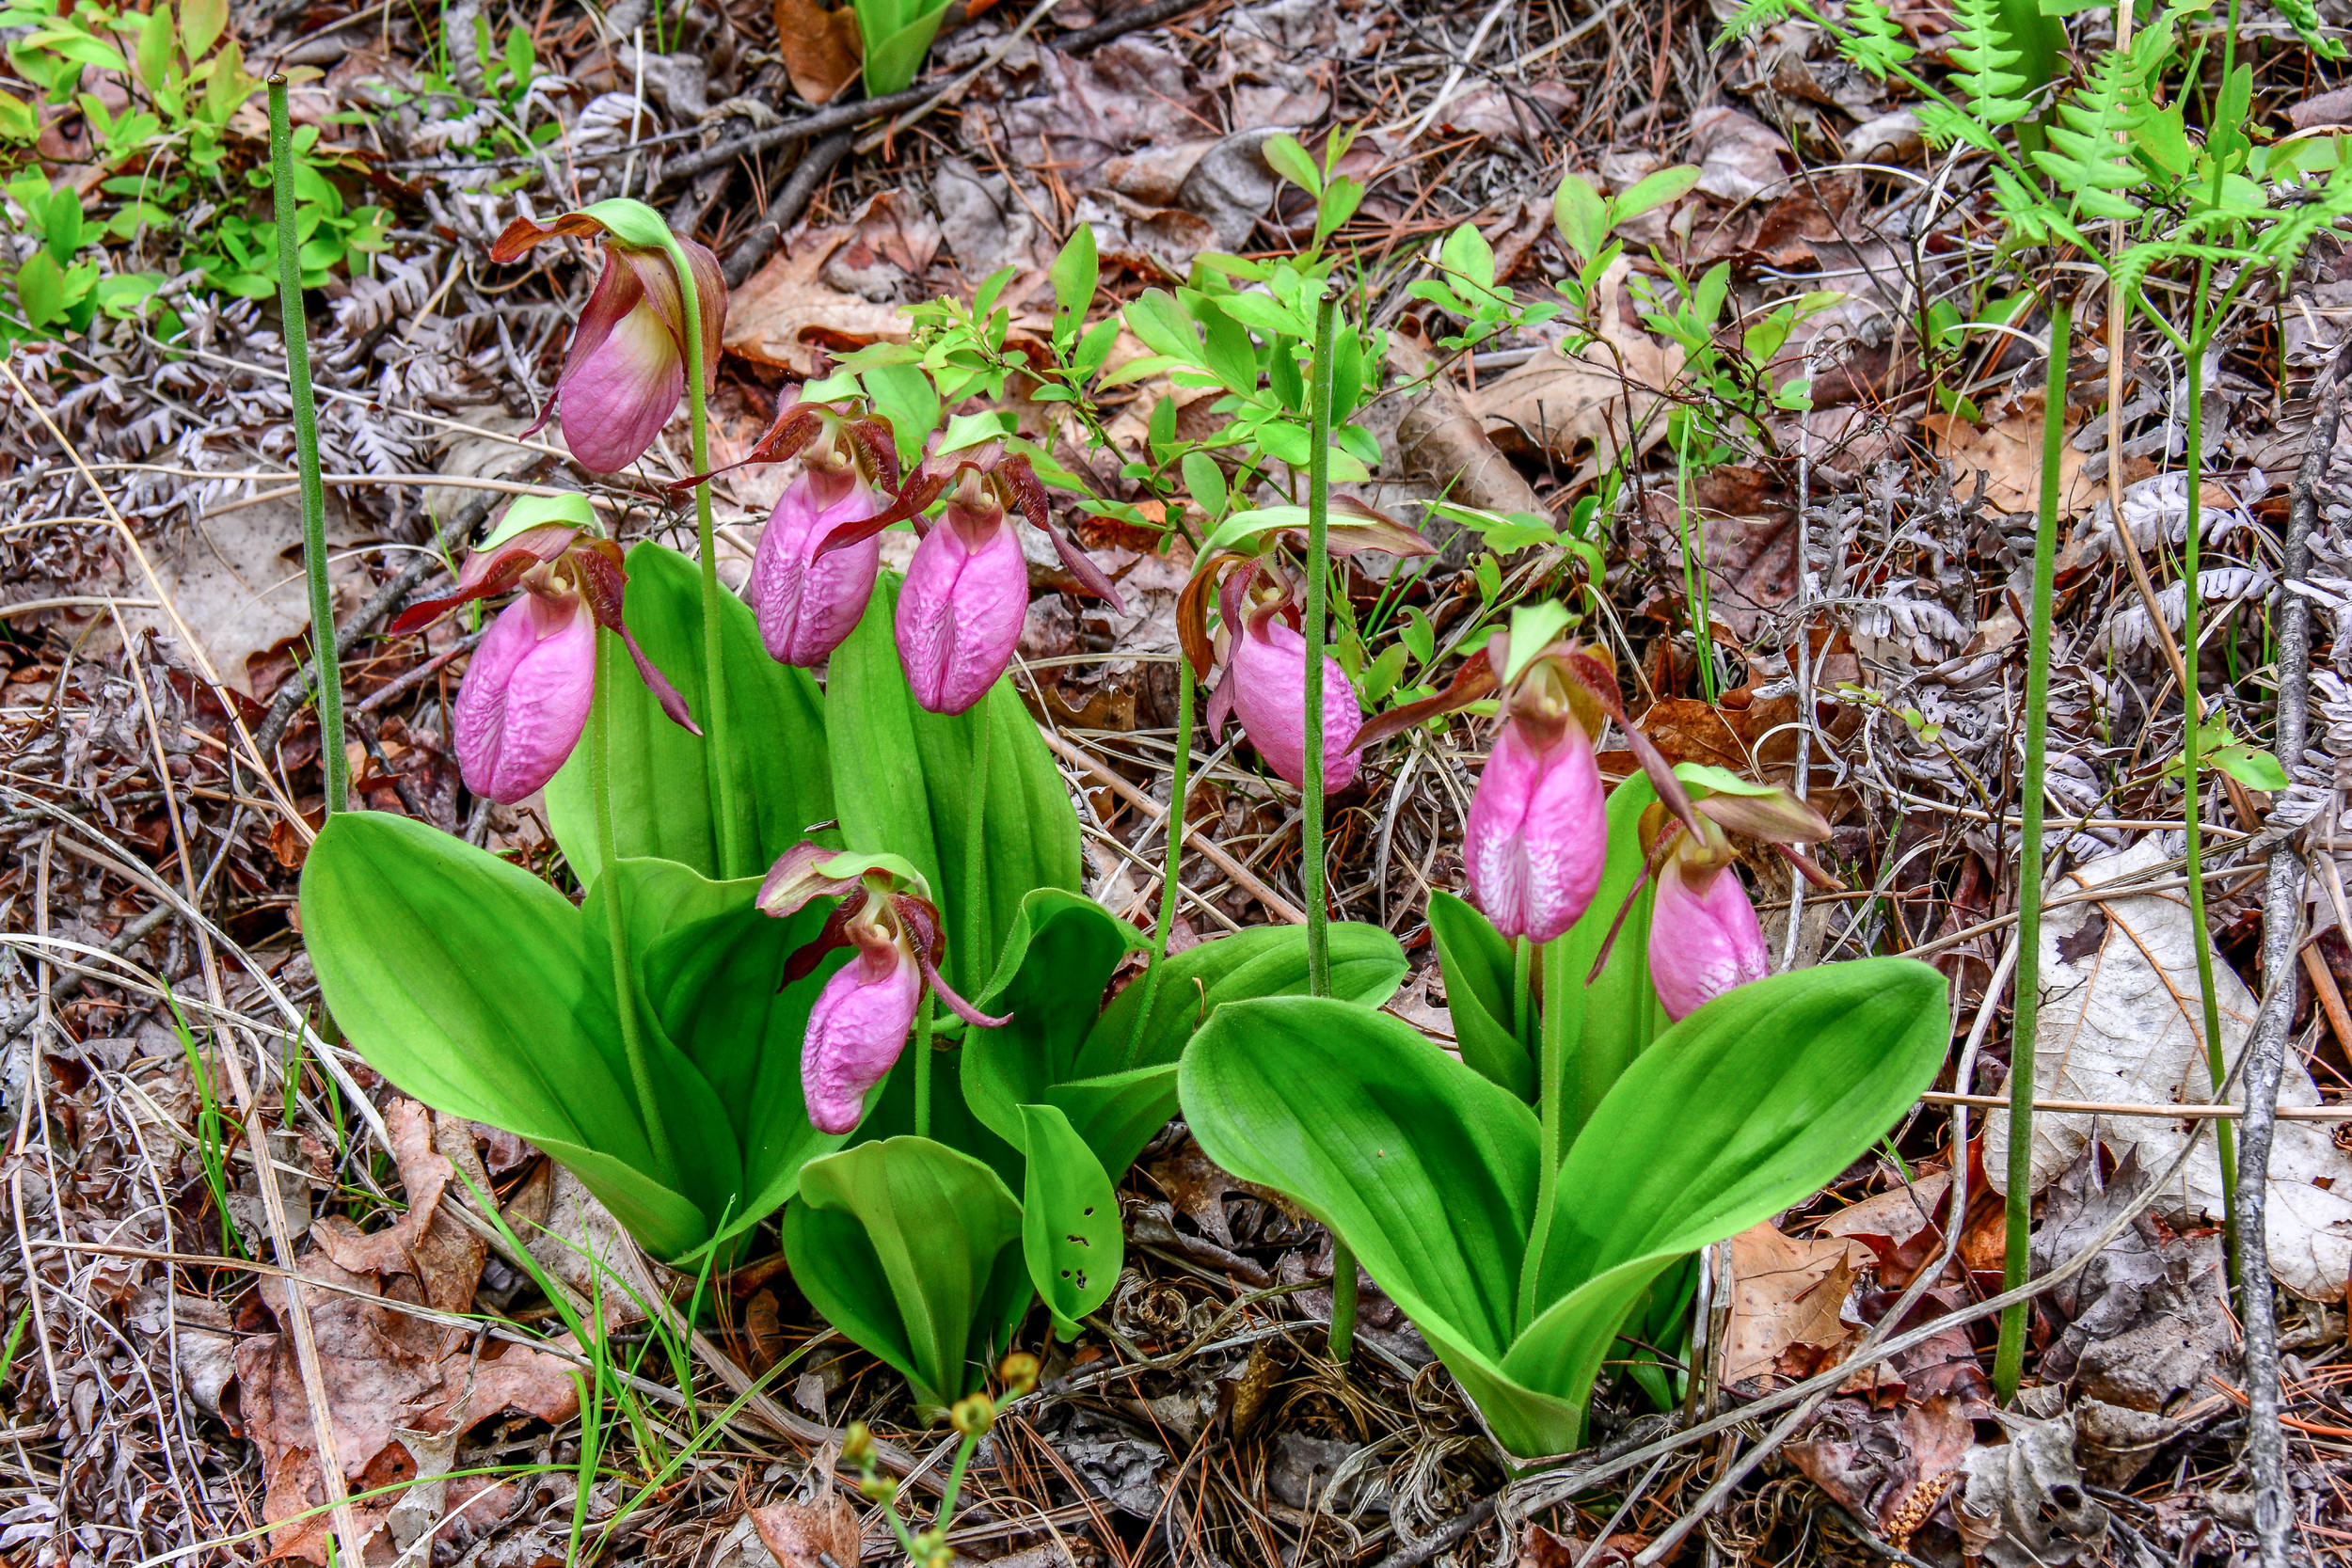 Lady slippers have made a huge comeback at Quabbin since the deer hunt was enacted in the early 1990's.